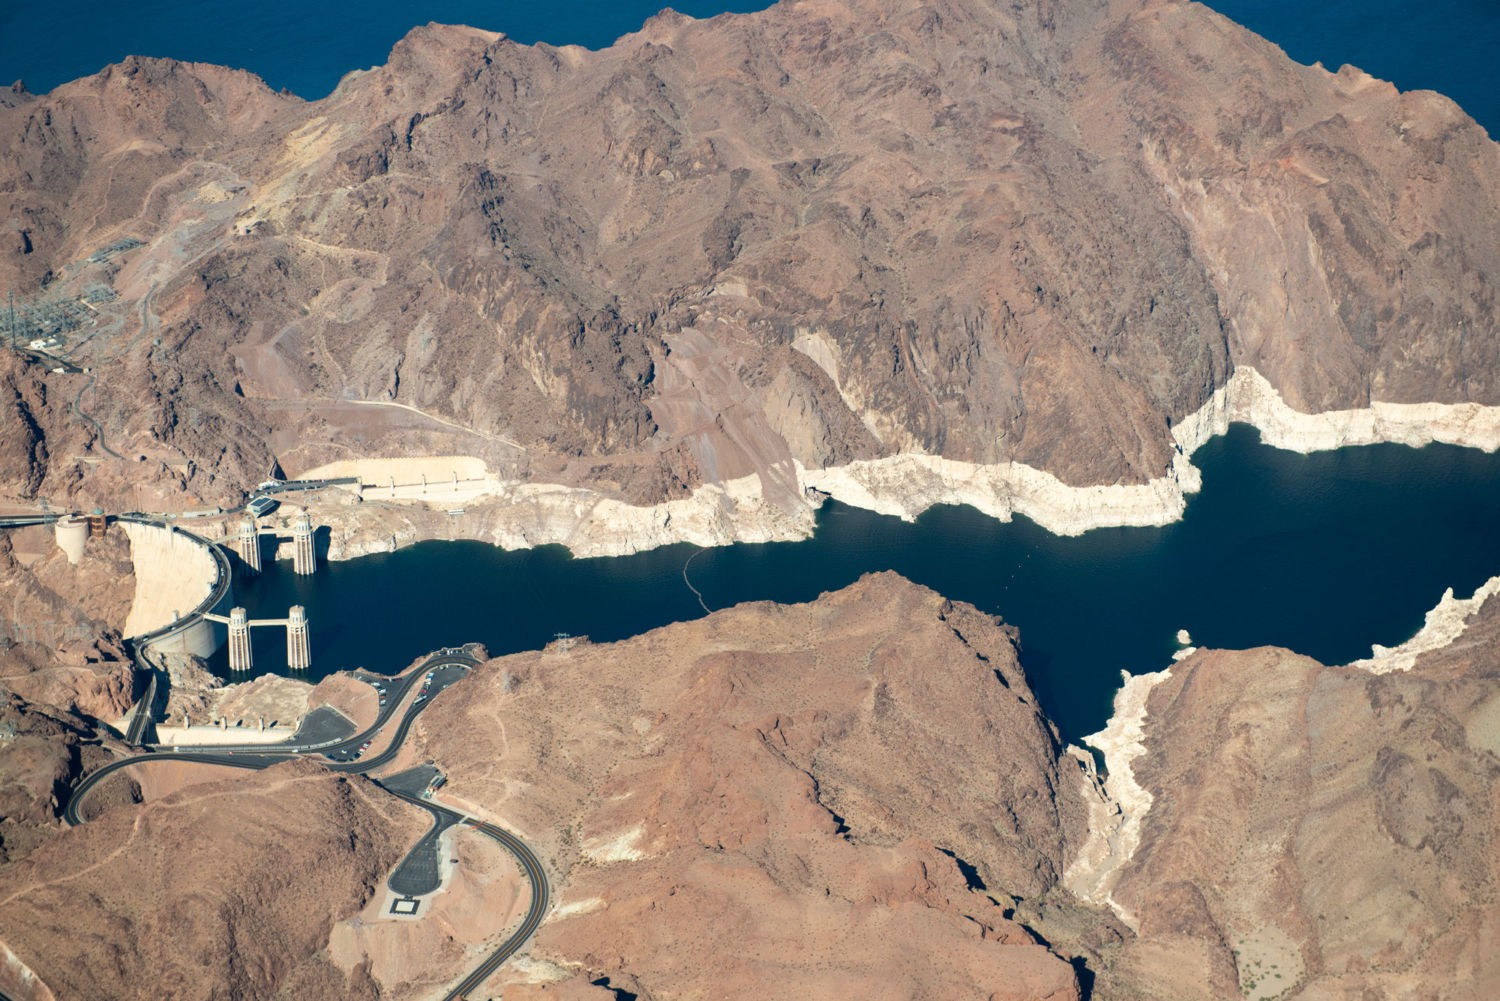 An aerial photo of Lake Mead, showing a visible water line where the water level has dropped from previous levels.